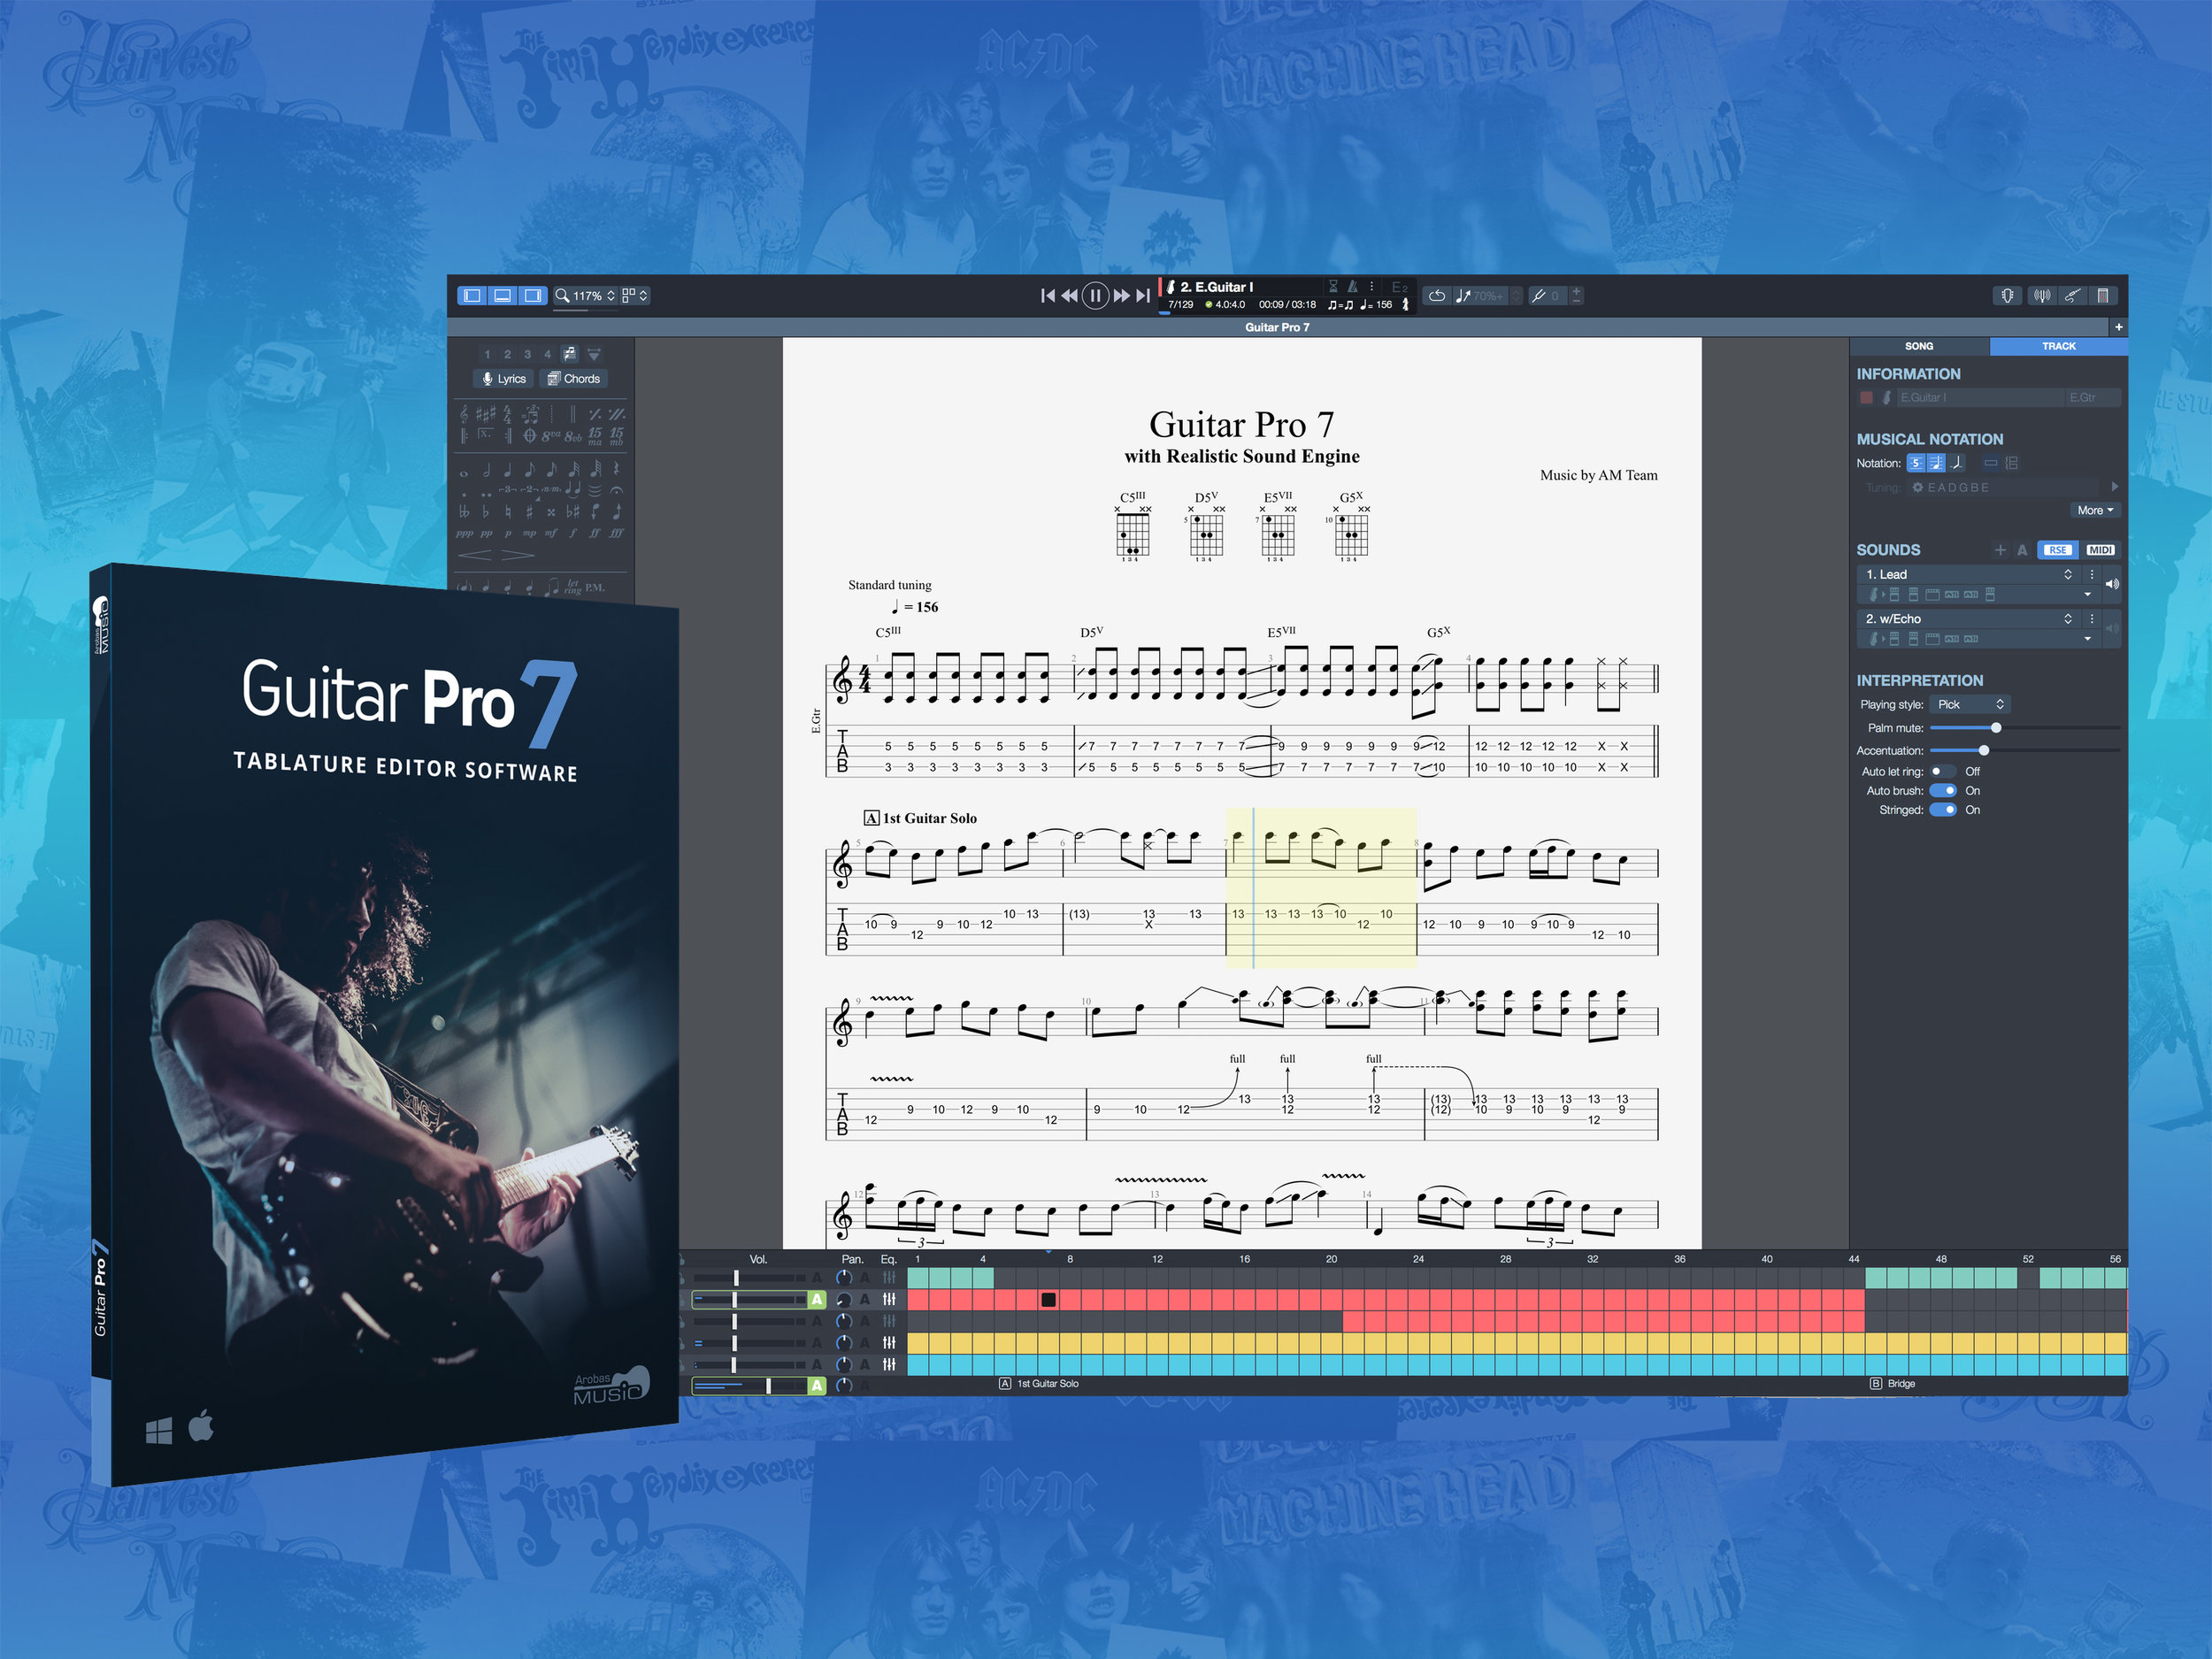 Guitar Pro - Moses uses Guitar Pro 7.5 to notate all his fingerstyle arrangements because of its intuitive user interface, beautiful layout and keyboard shortcuts.